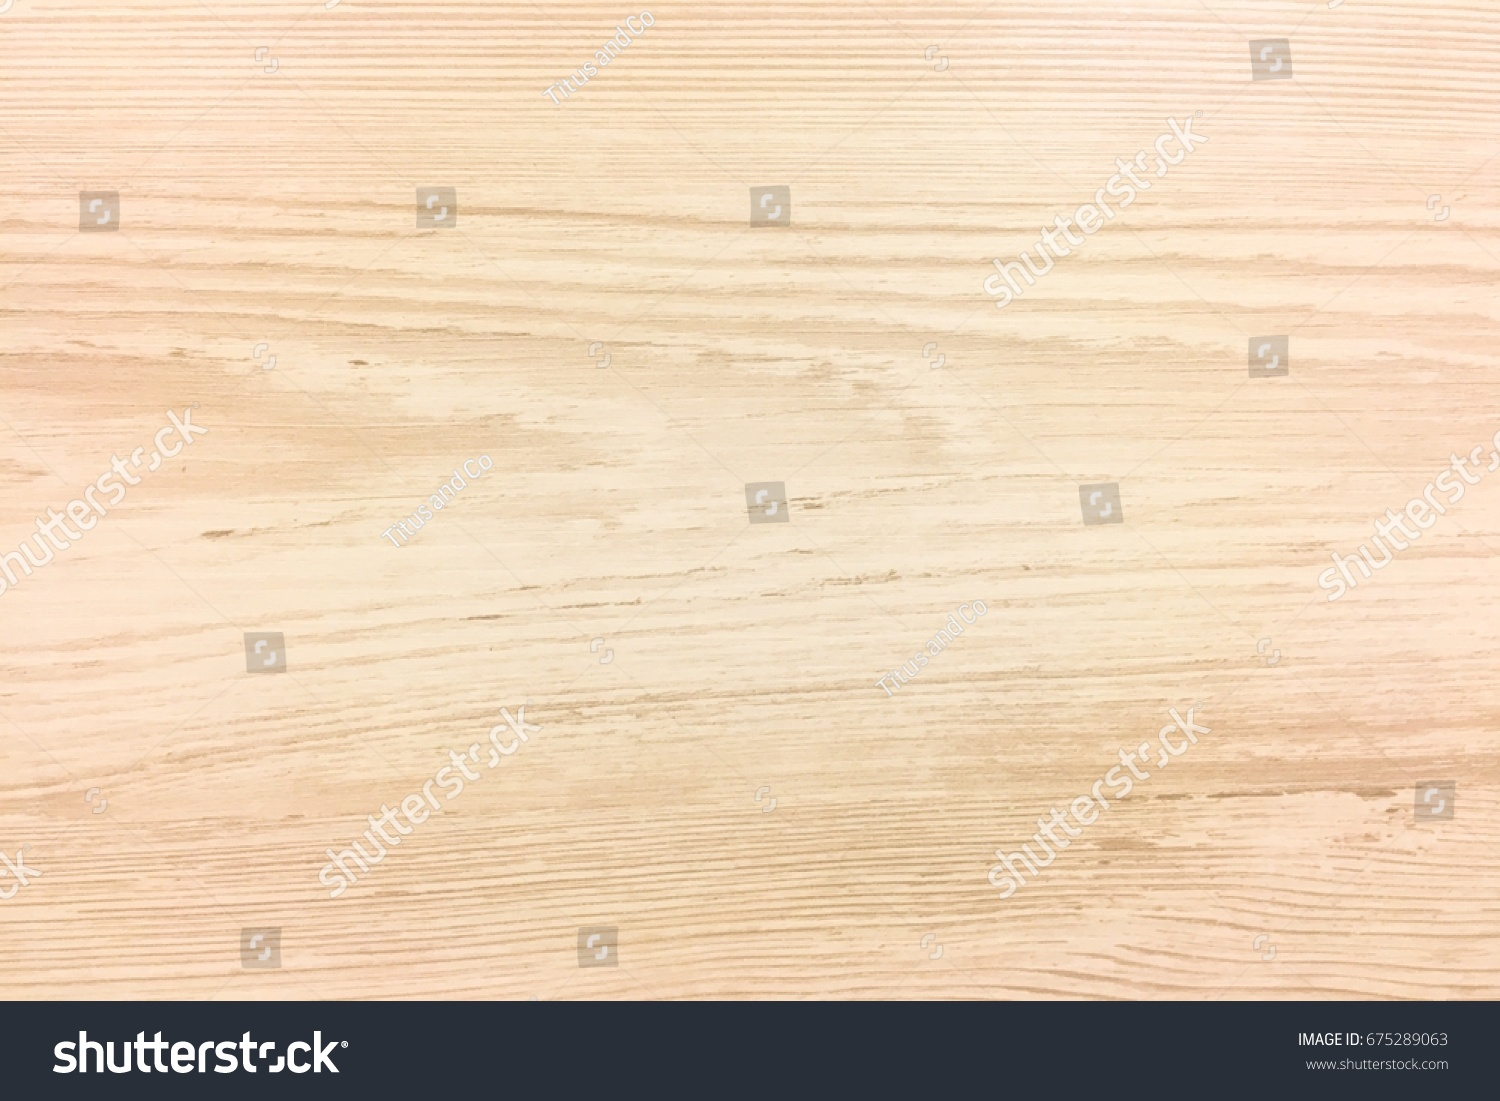 light wood floor background. Light wood texture background surface with old natural pattern or  table top view Wood Texture Background Surface Old Stock Photo 675289063